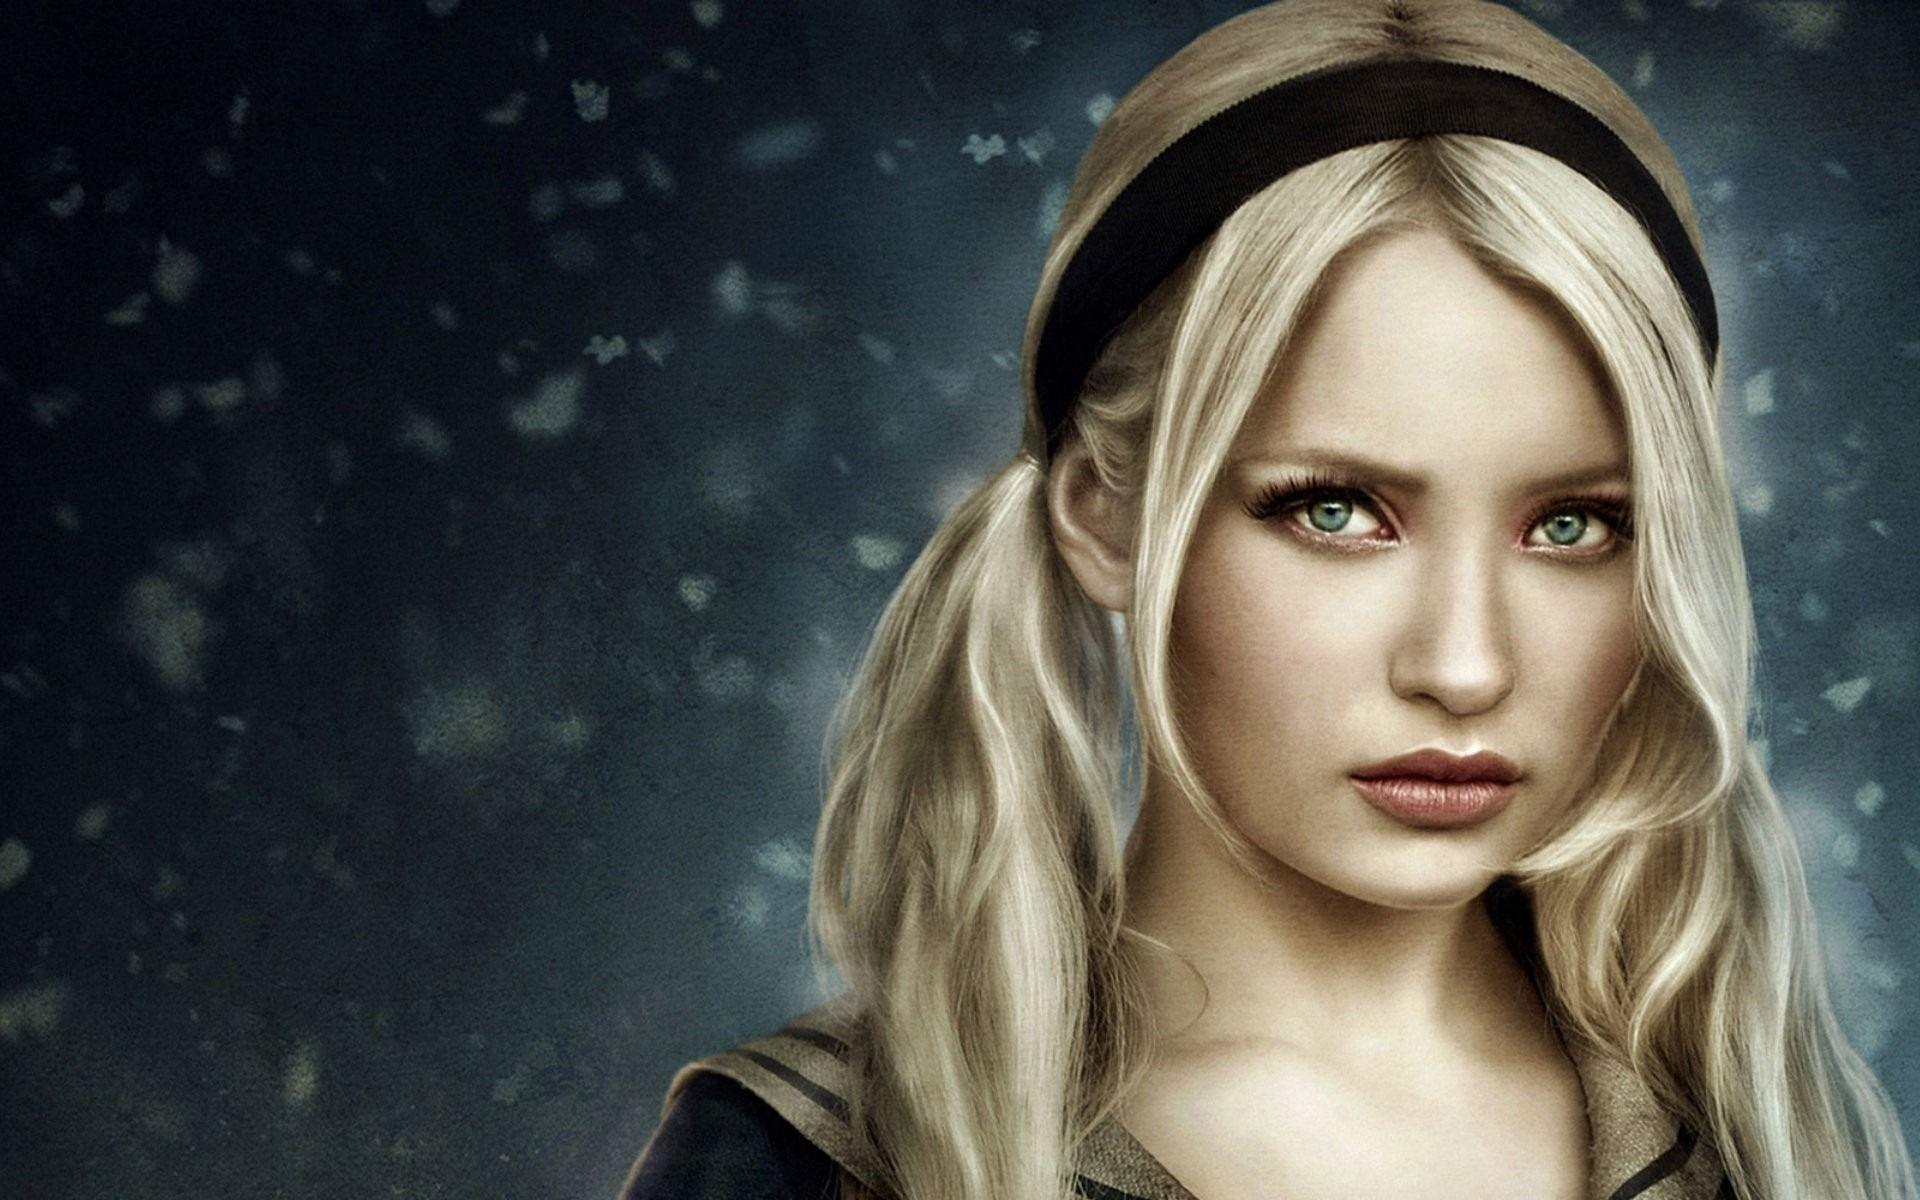 emily browning wallpapers - wallpaper cave